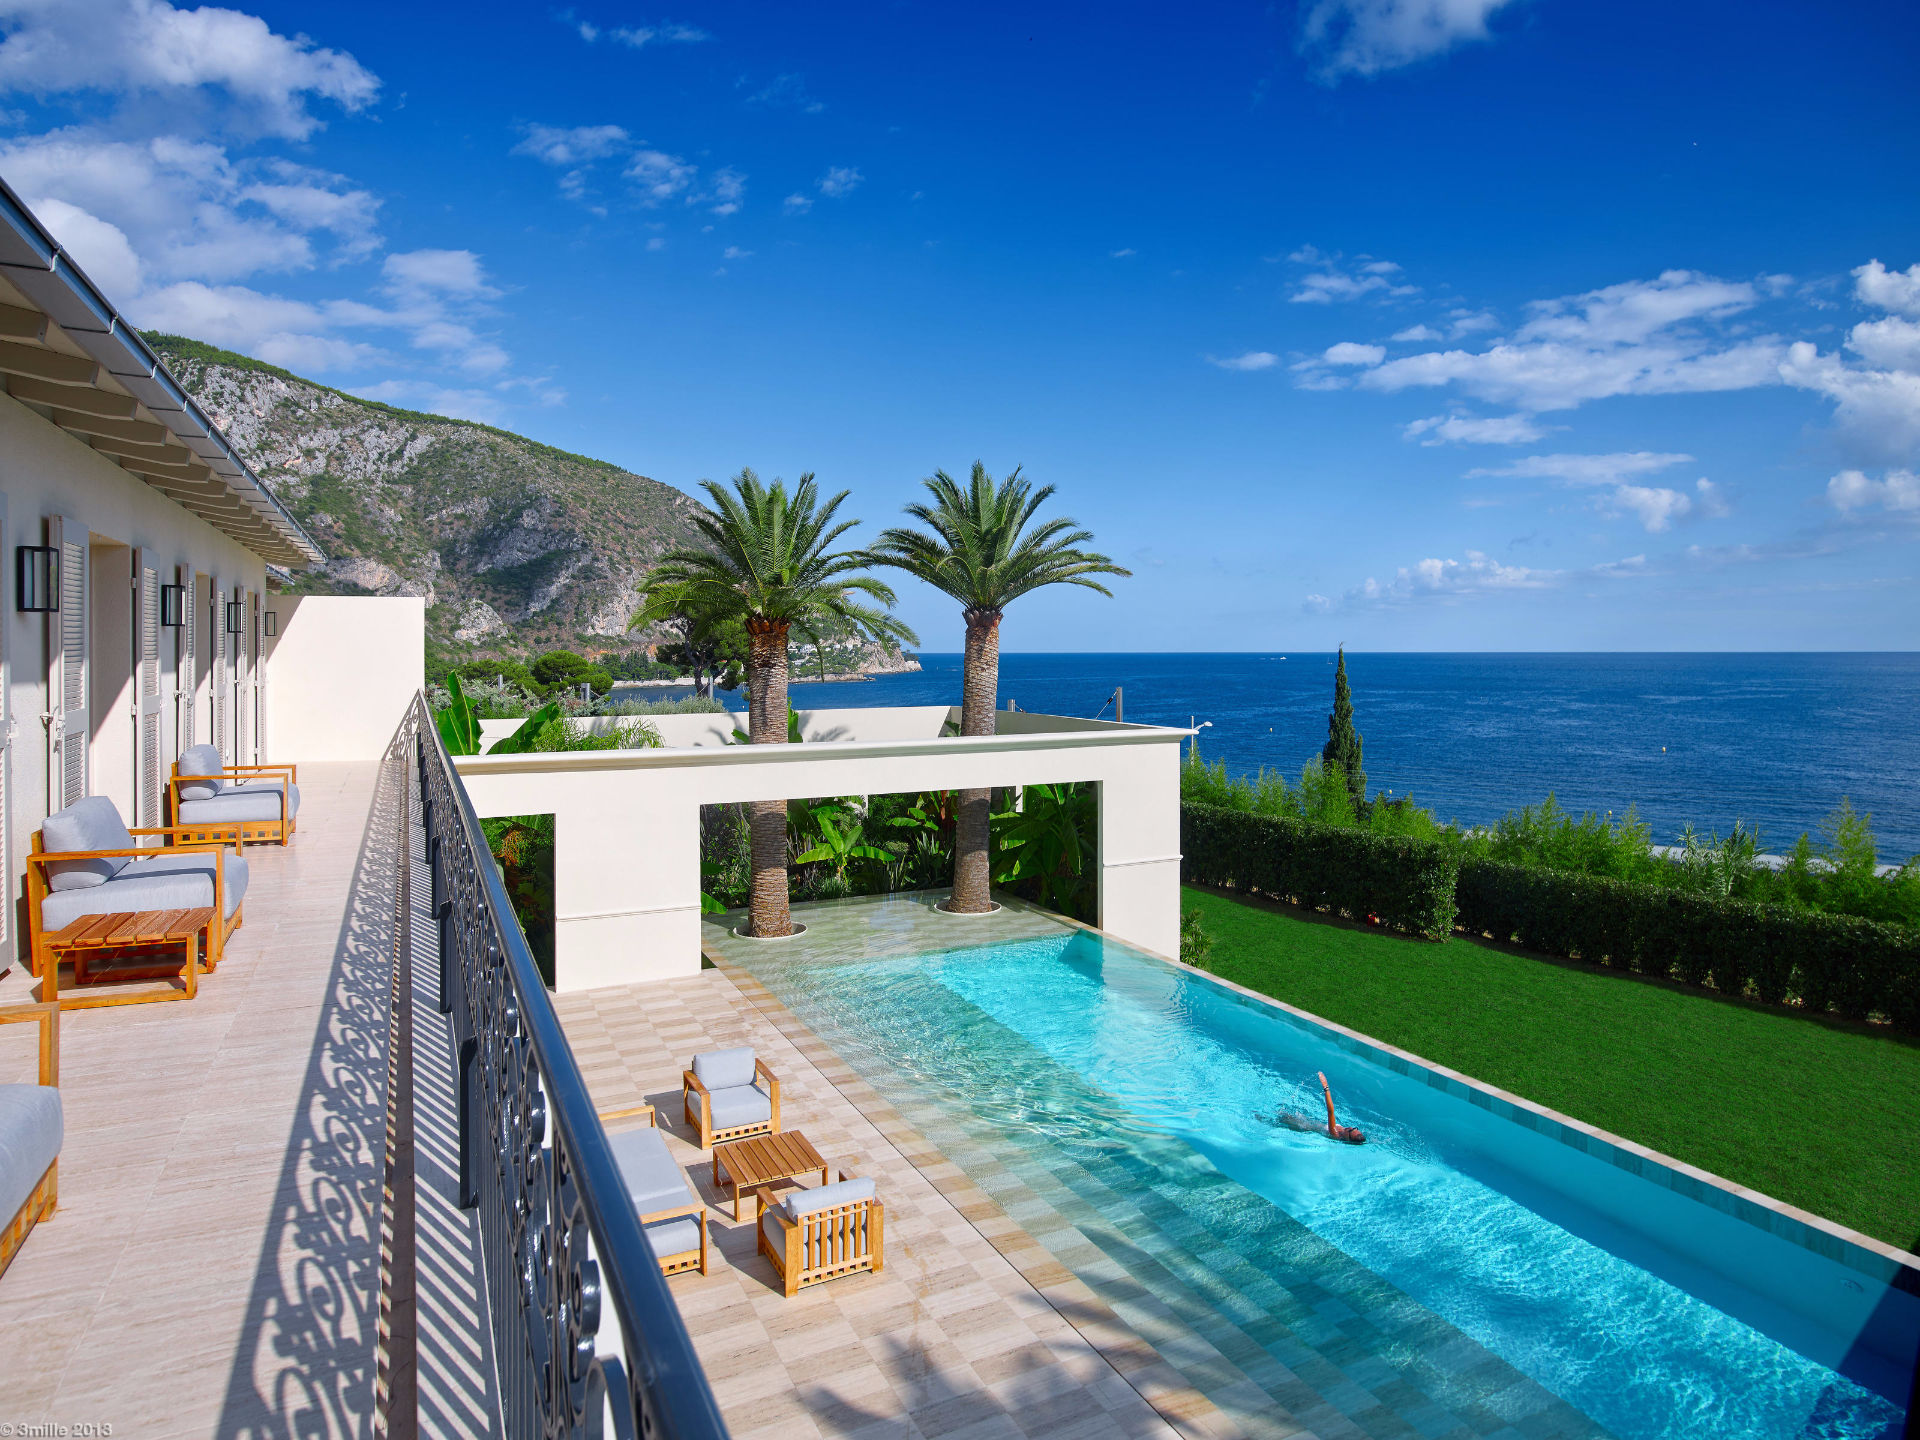 Property For Sale at Luxurious villa with tennis court, pool and stunning sea views